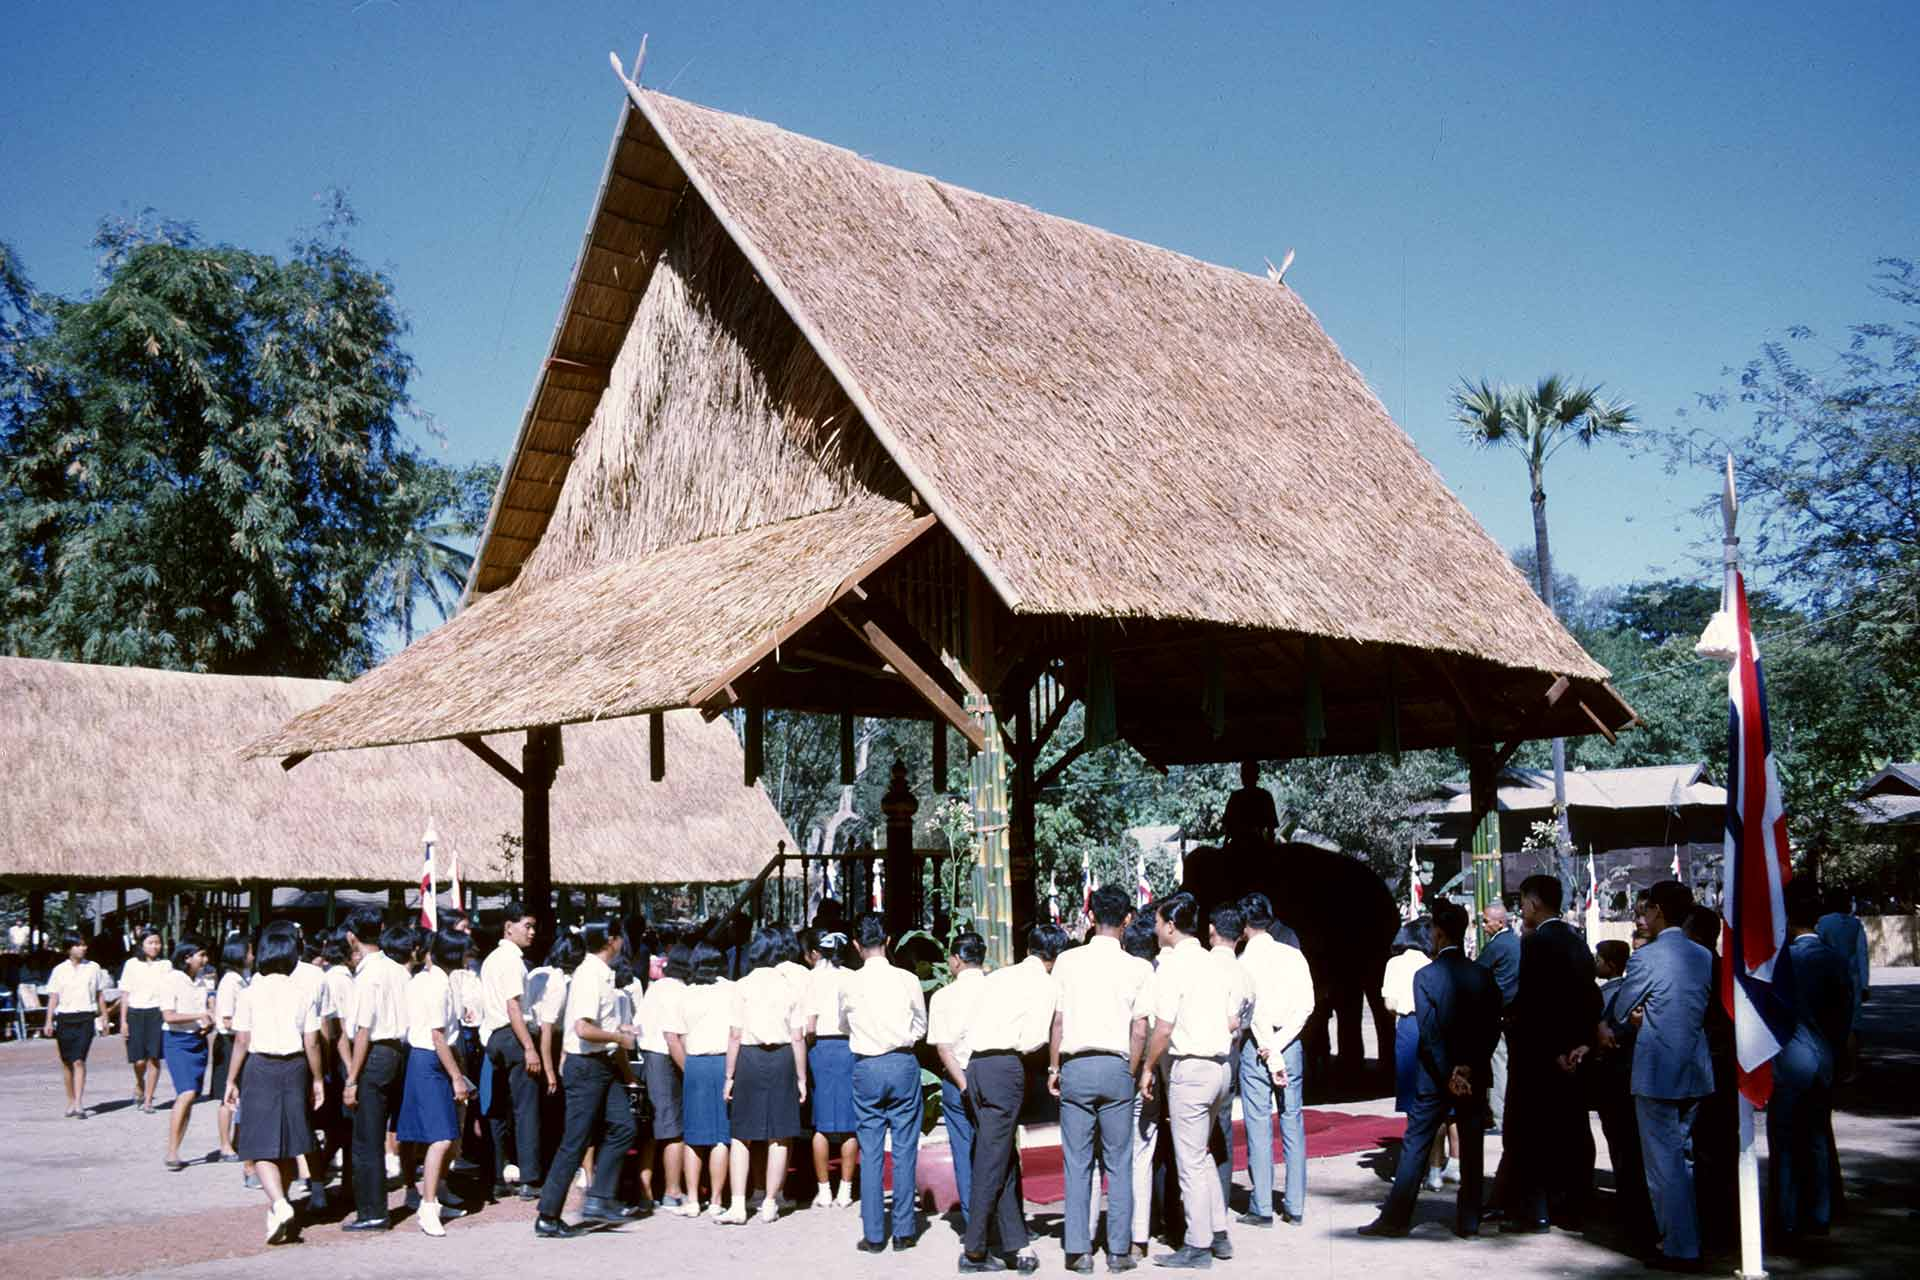 People gather outside a tall wood and straw open-air outbuilding under which is an elephant.